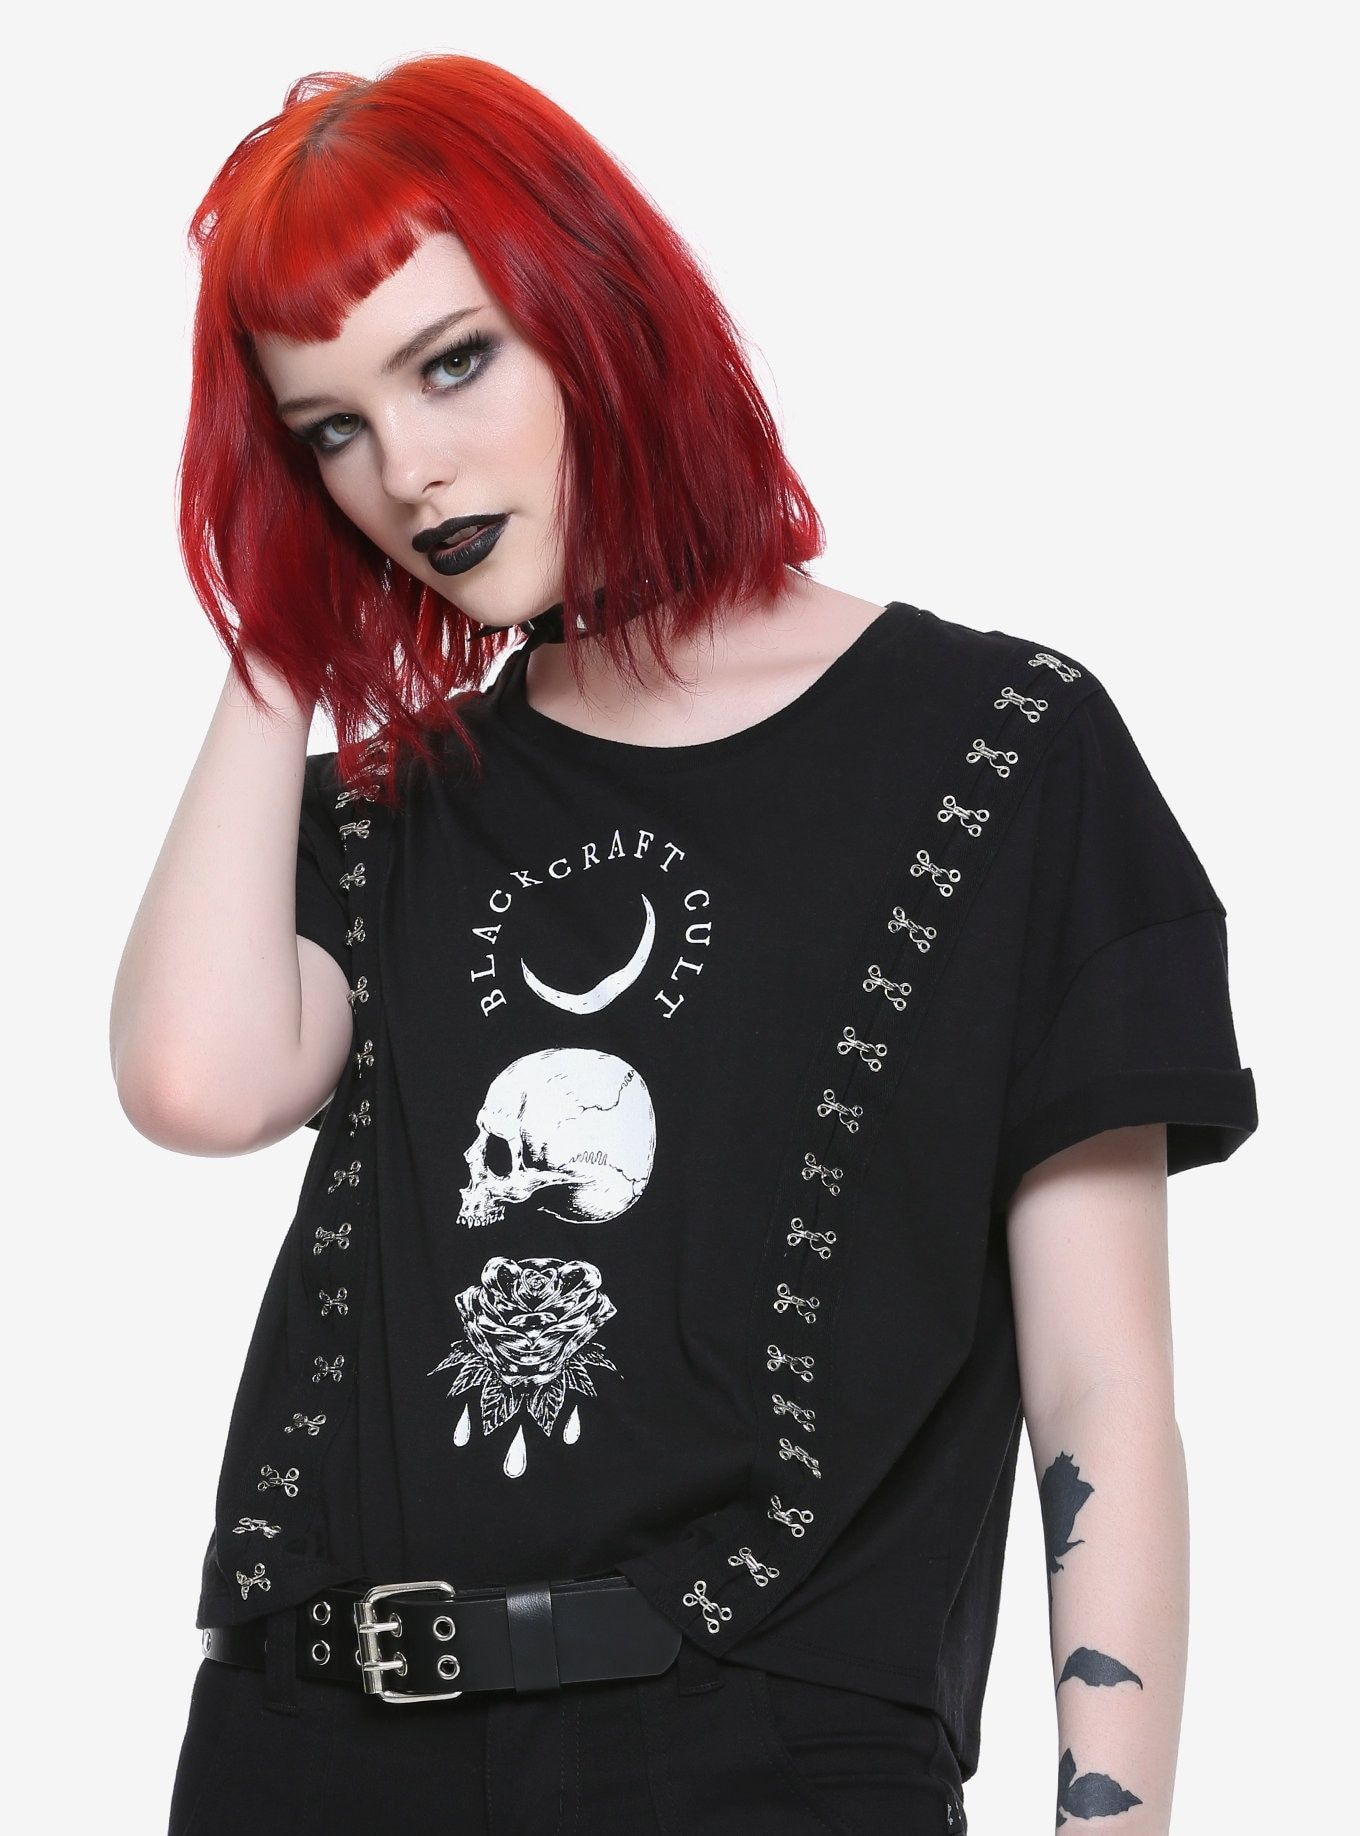 501d456cbe4a5 BlackCraft Hook   Eye Closure Girls Top Hot Topic Exclusive in 2019 ...